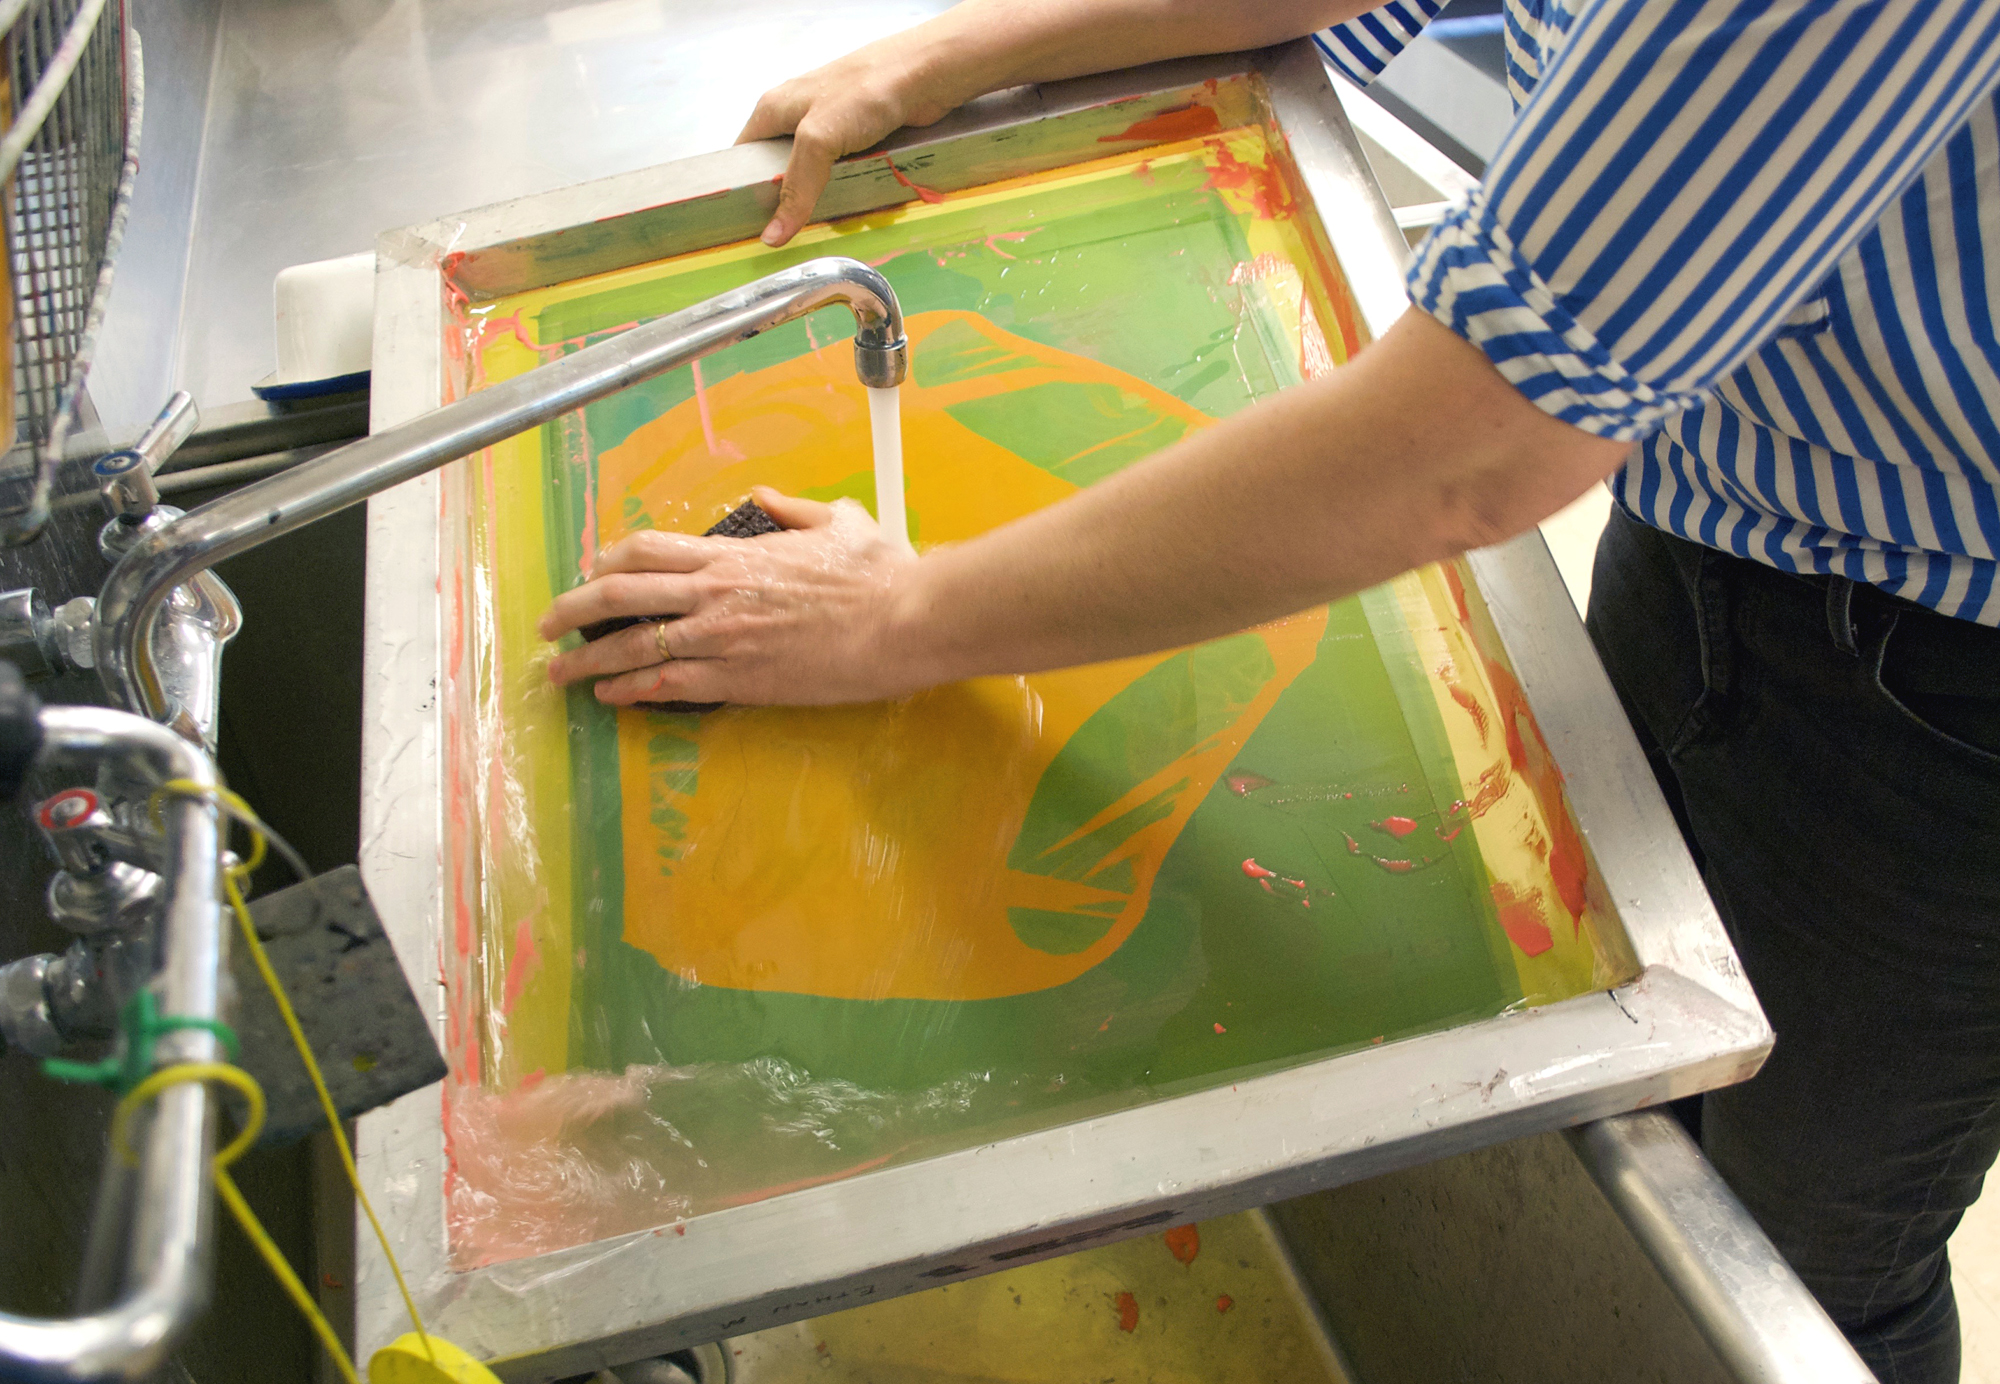 Image: Guen Montgomery washes a screenprinting screen in a small sink. Her left hand uses a sponge to wash of neon pink paint as water pours out of a faucet and onto the screen. Photo by Jessica Hammie.